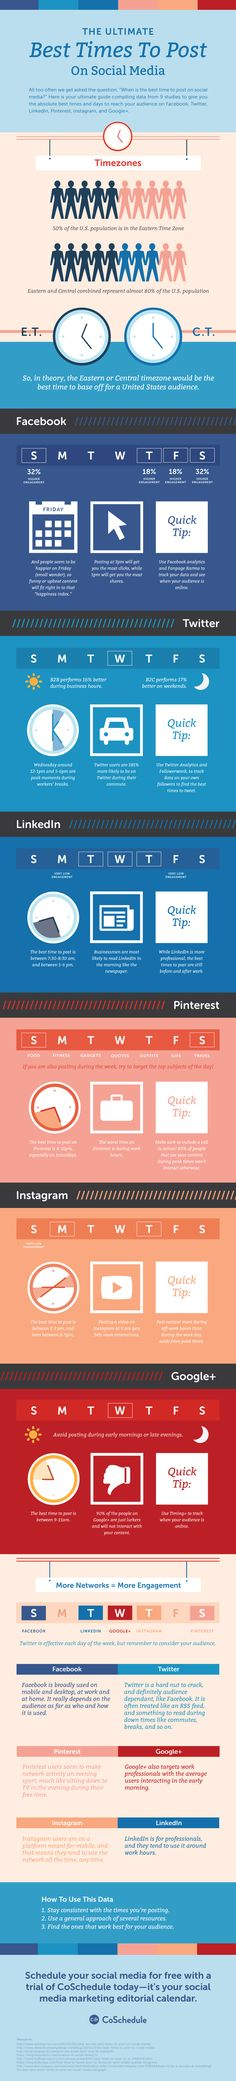 What 10 Studies Say About The Best Times To Post On Social Media: Infographic